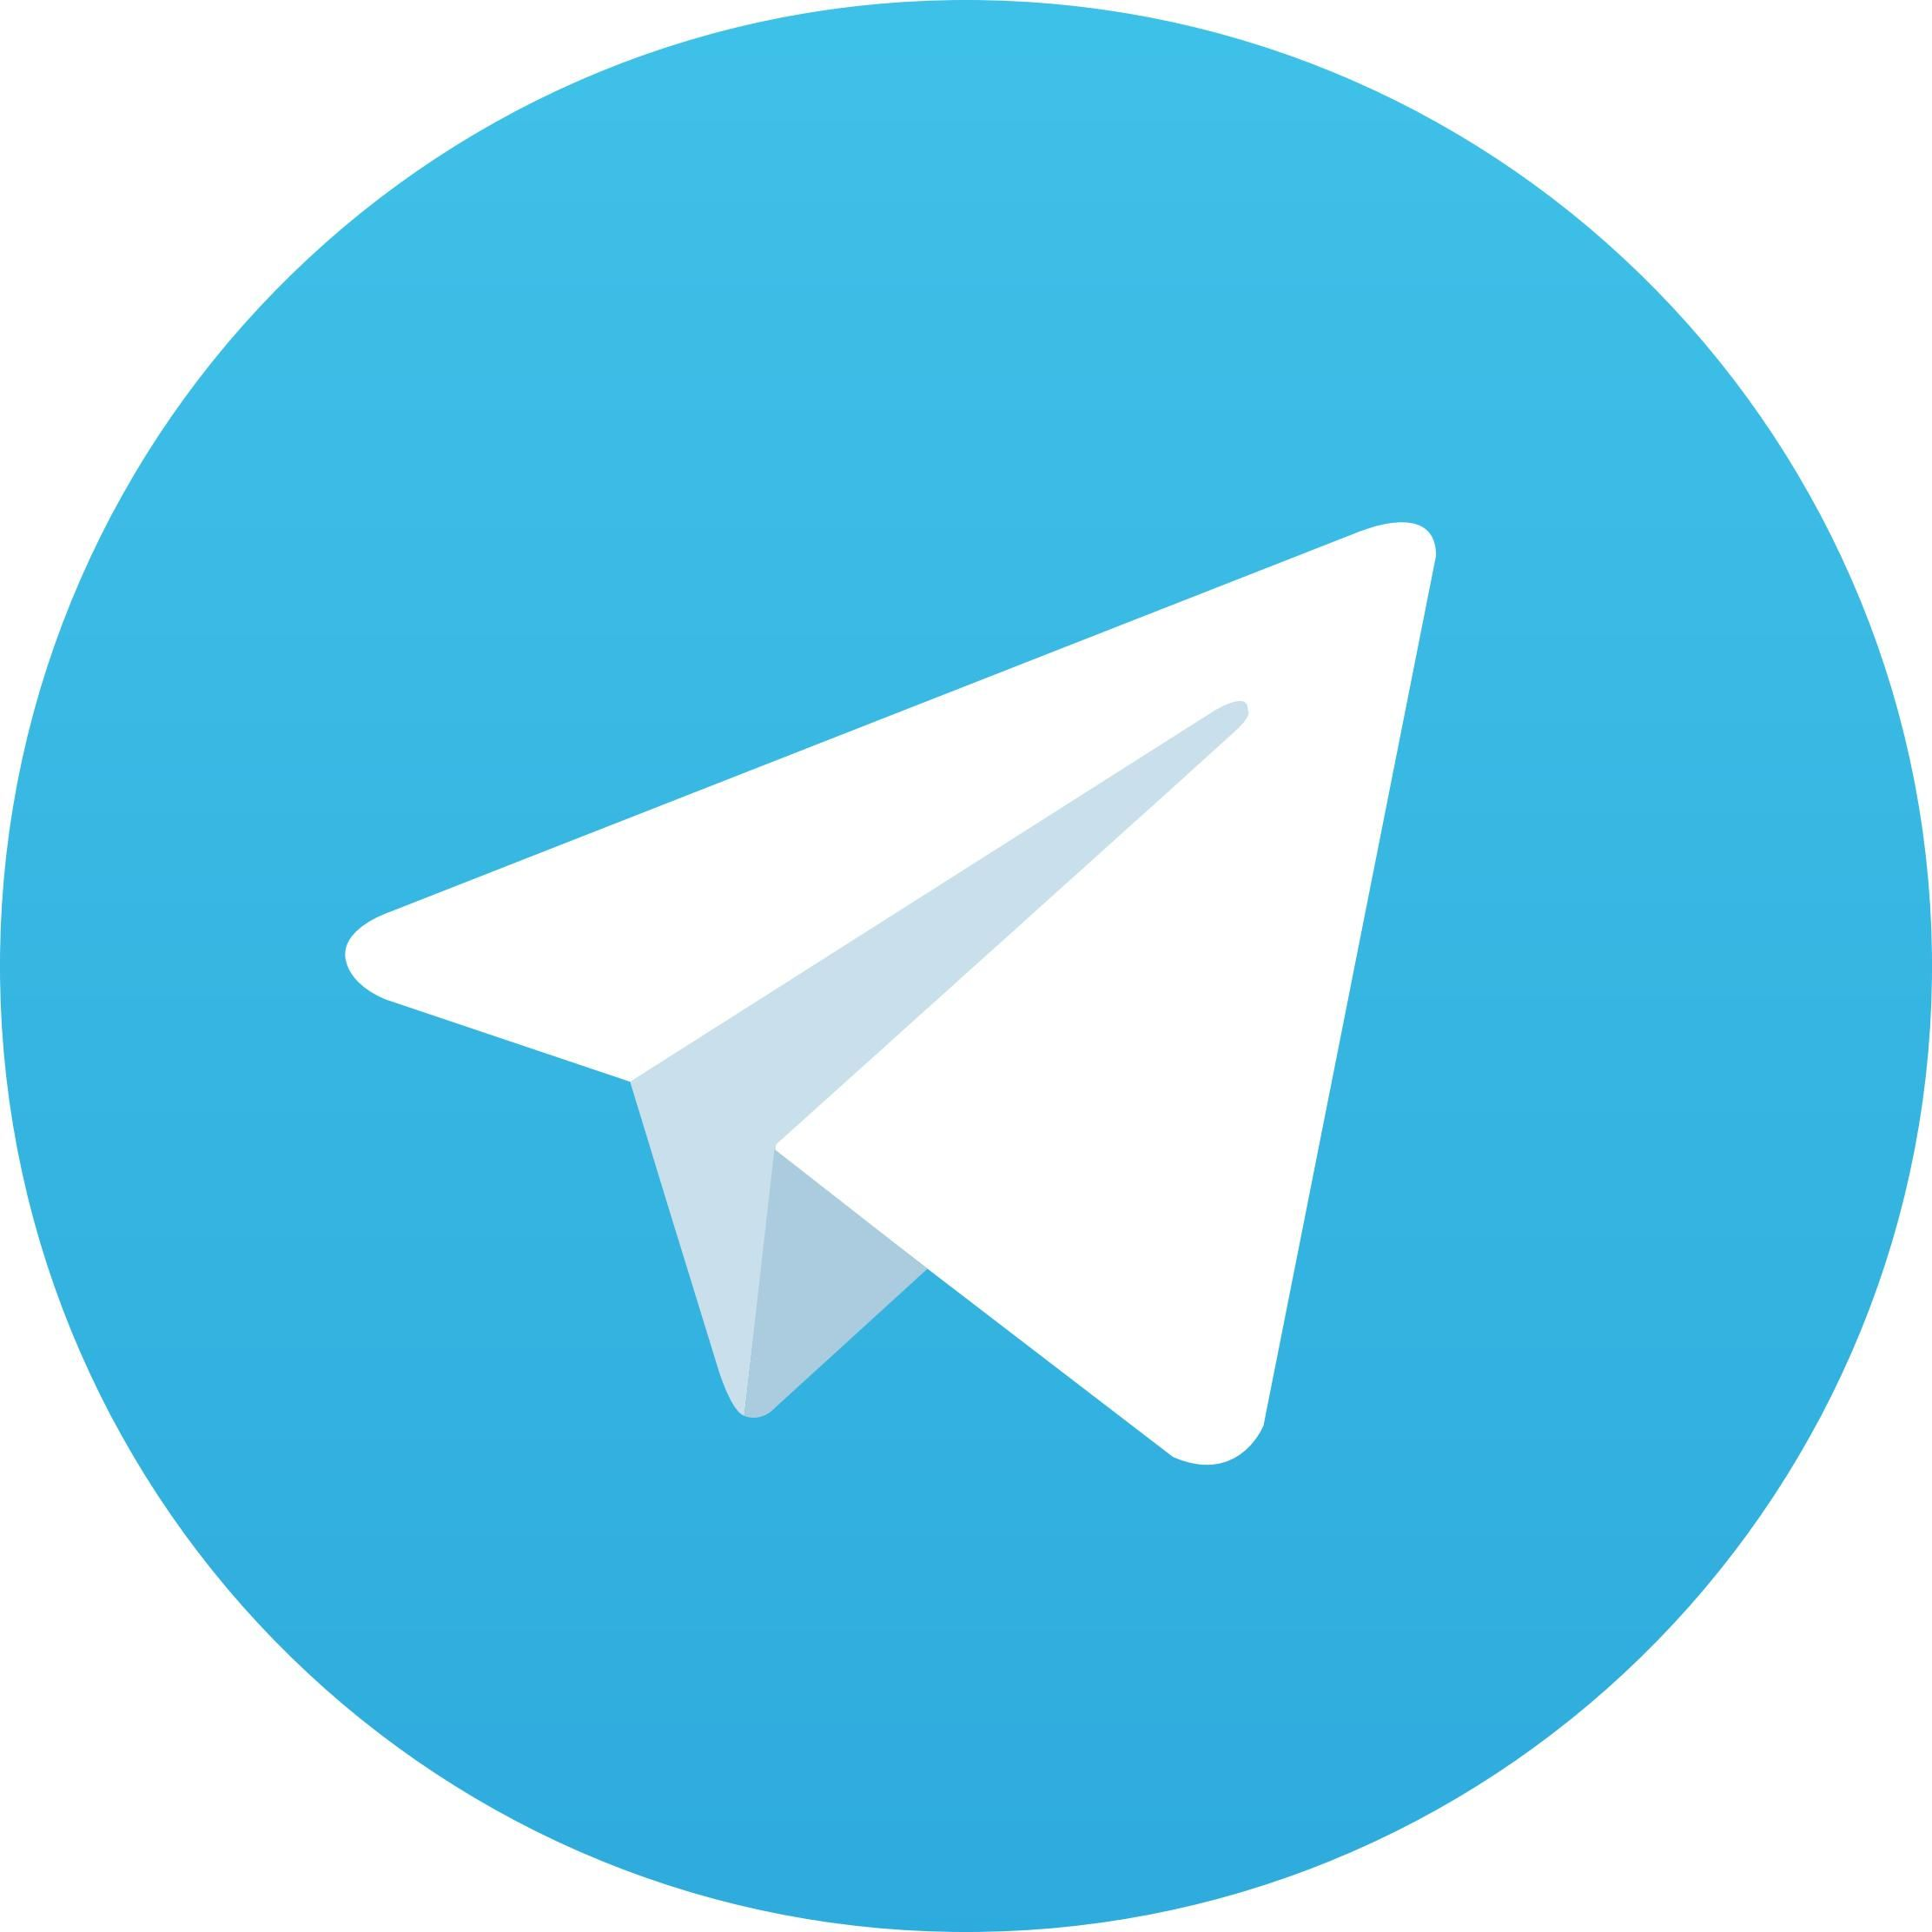 Telegram Logo (With images) | Telegram logo, App logo, Logos